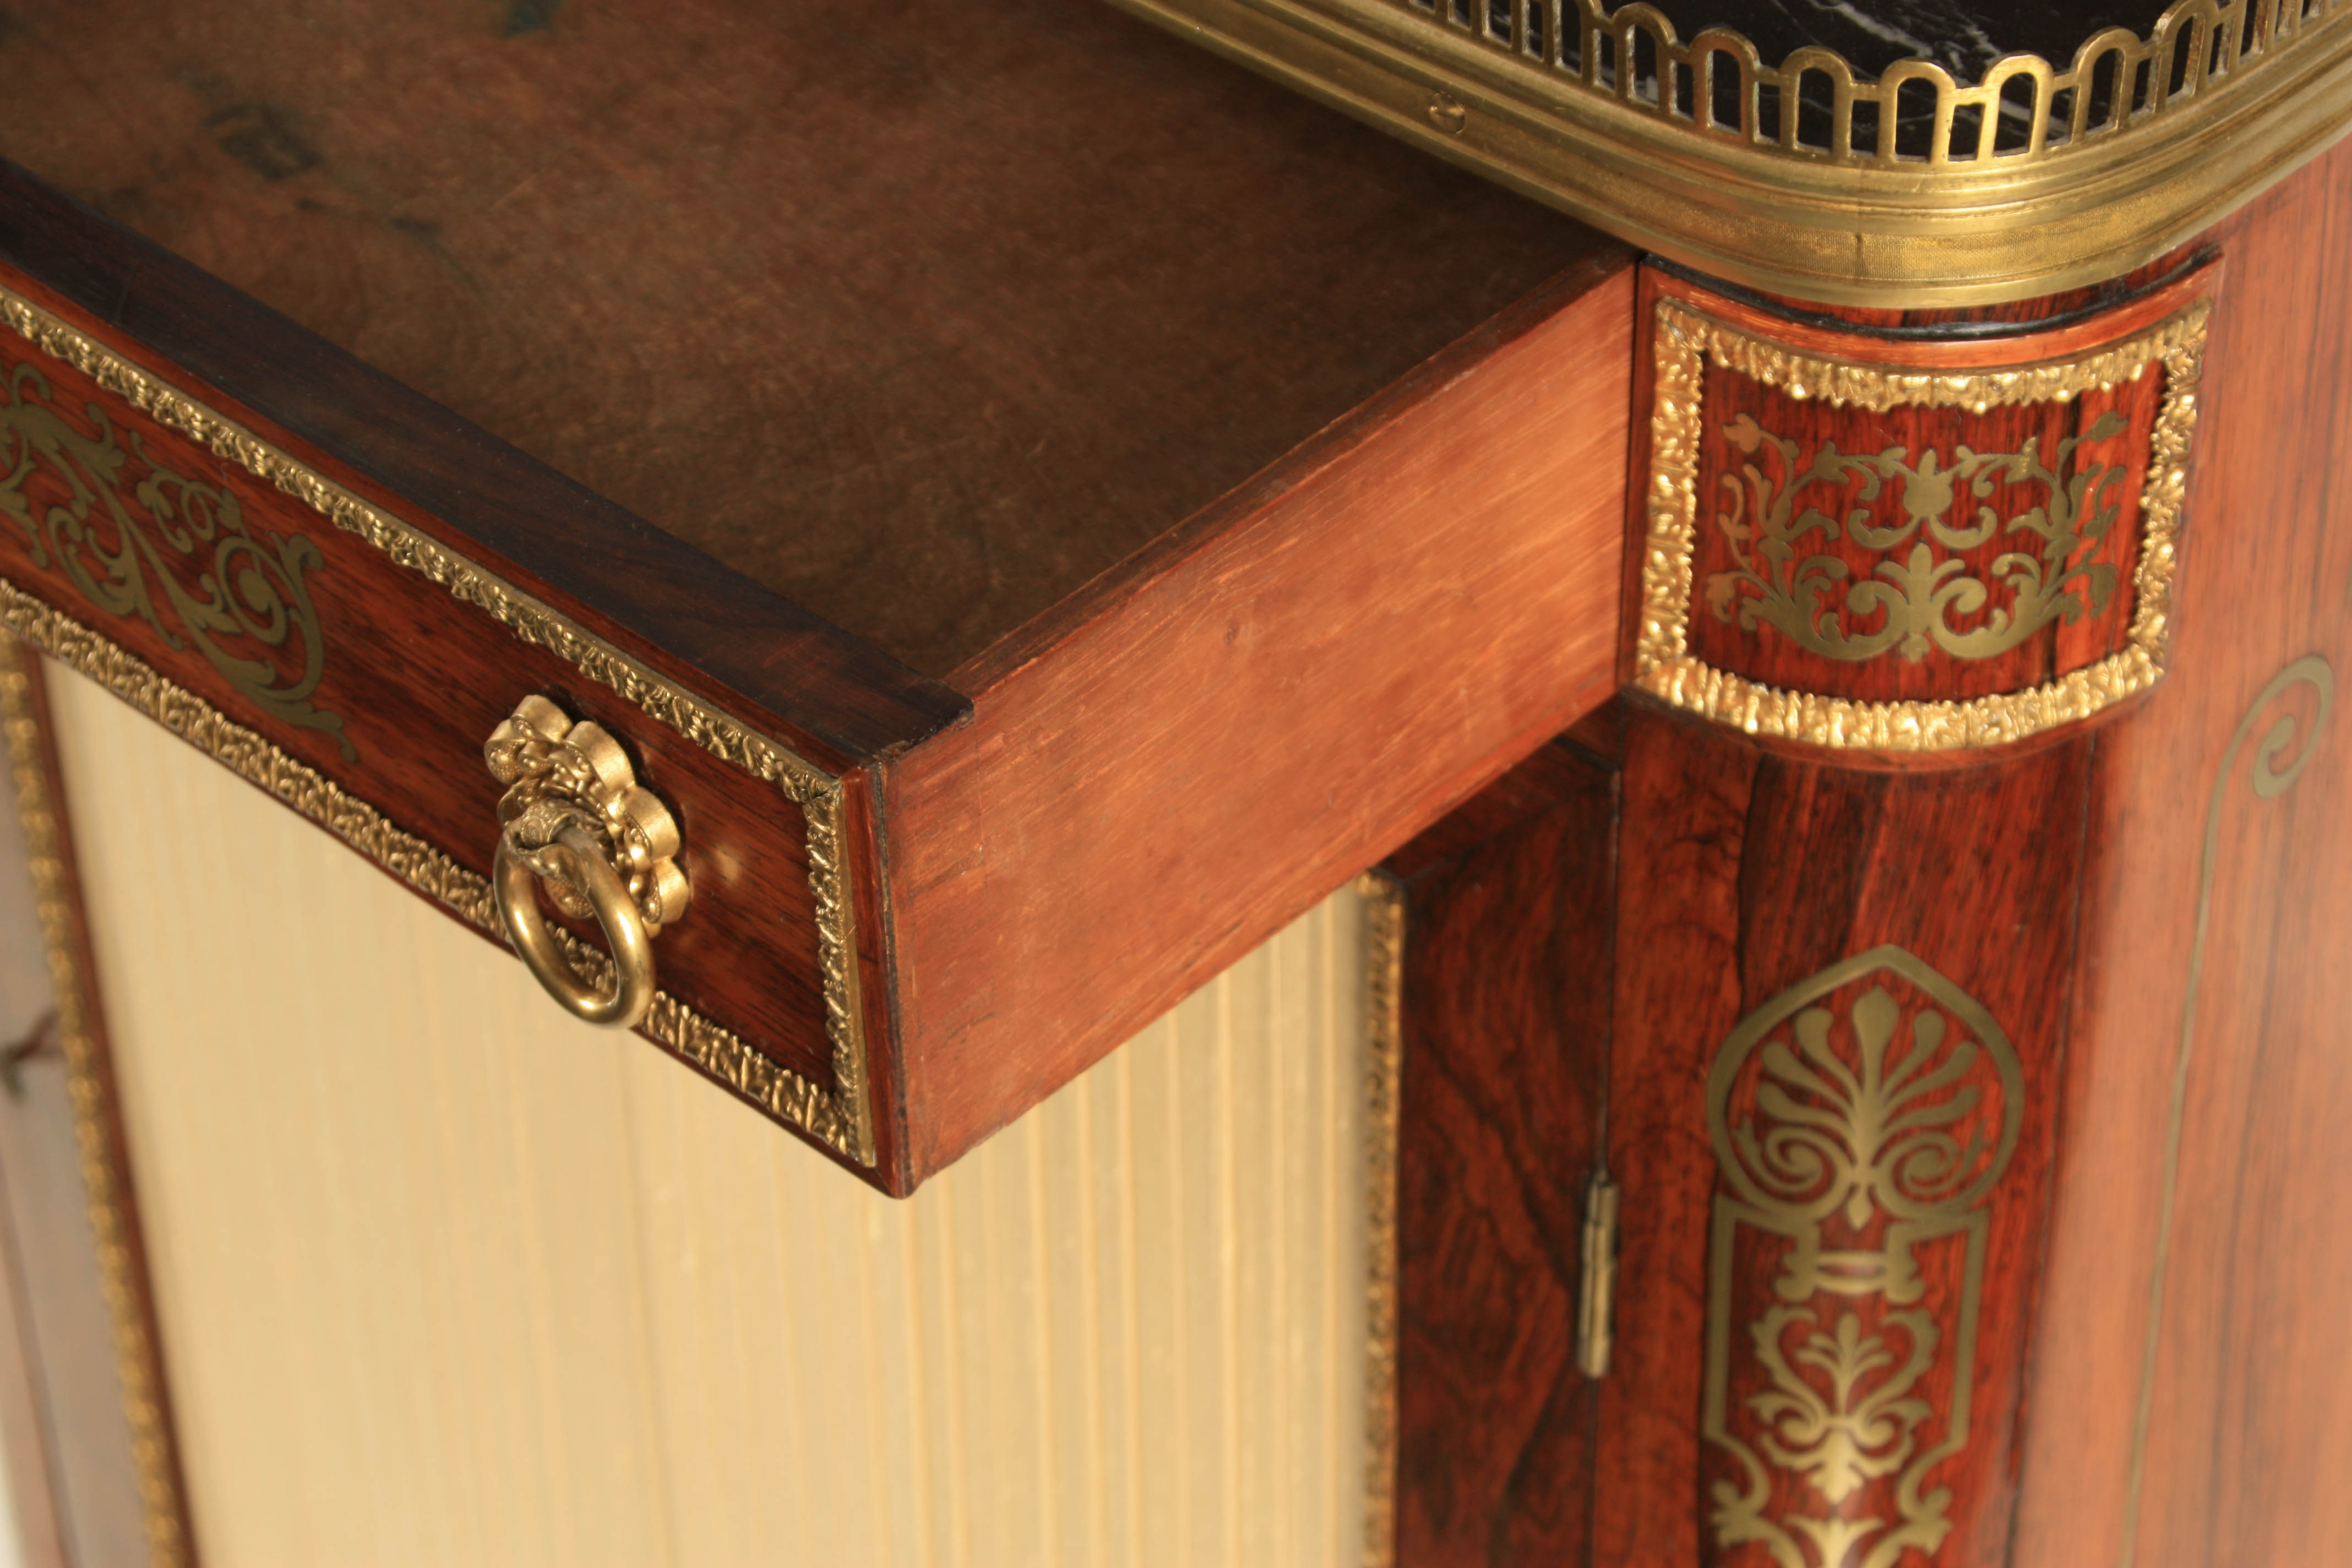 A FINE REGENCY BRASS INLAID ROSEWOOD SIDE CABINET IN THE MANNER OF JOHN MCCLEAN the brass - Image 6 of 7